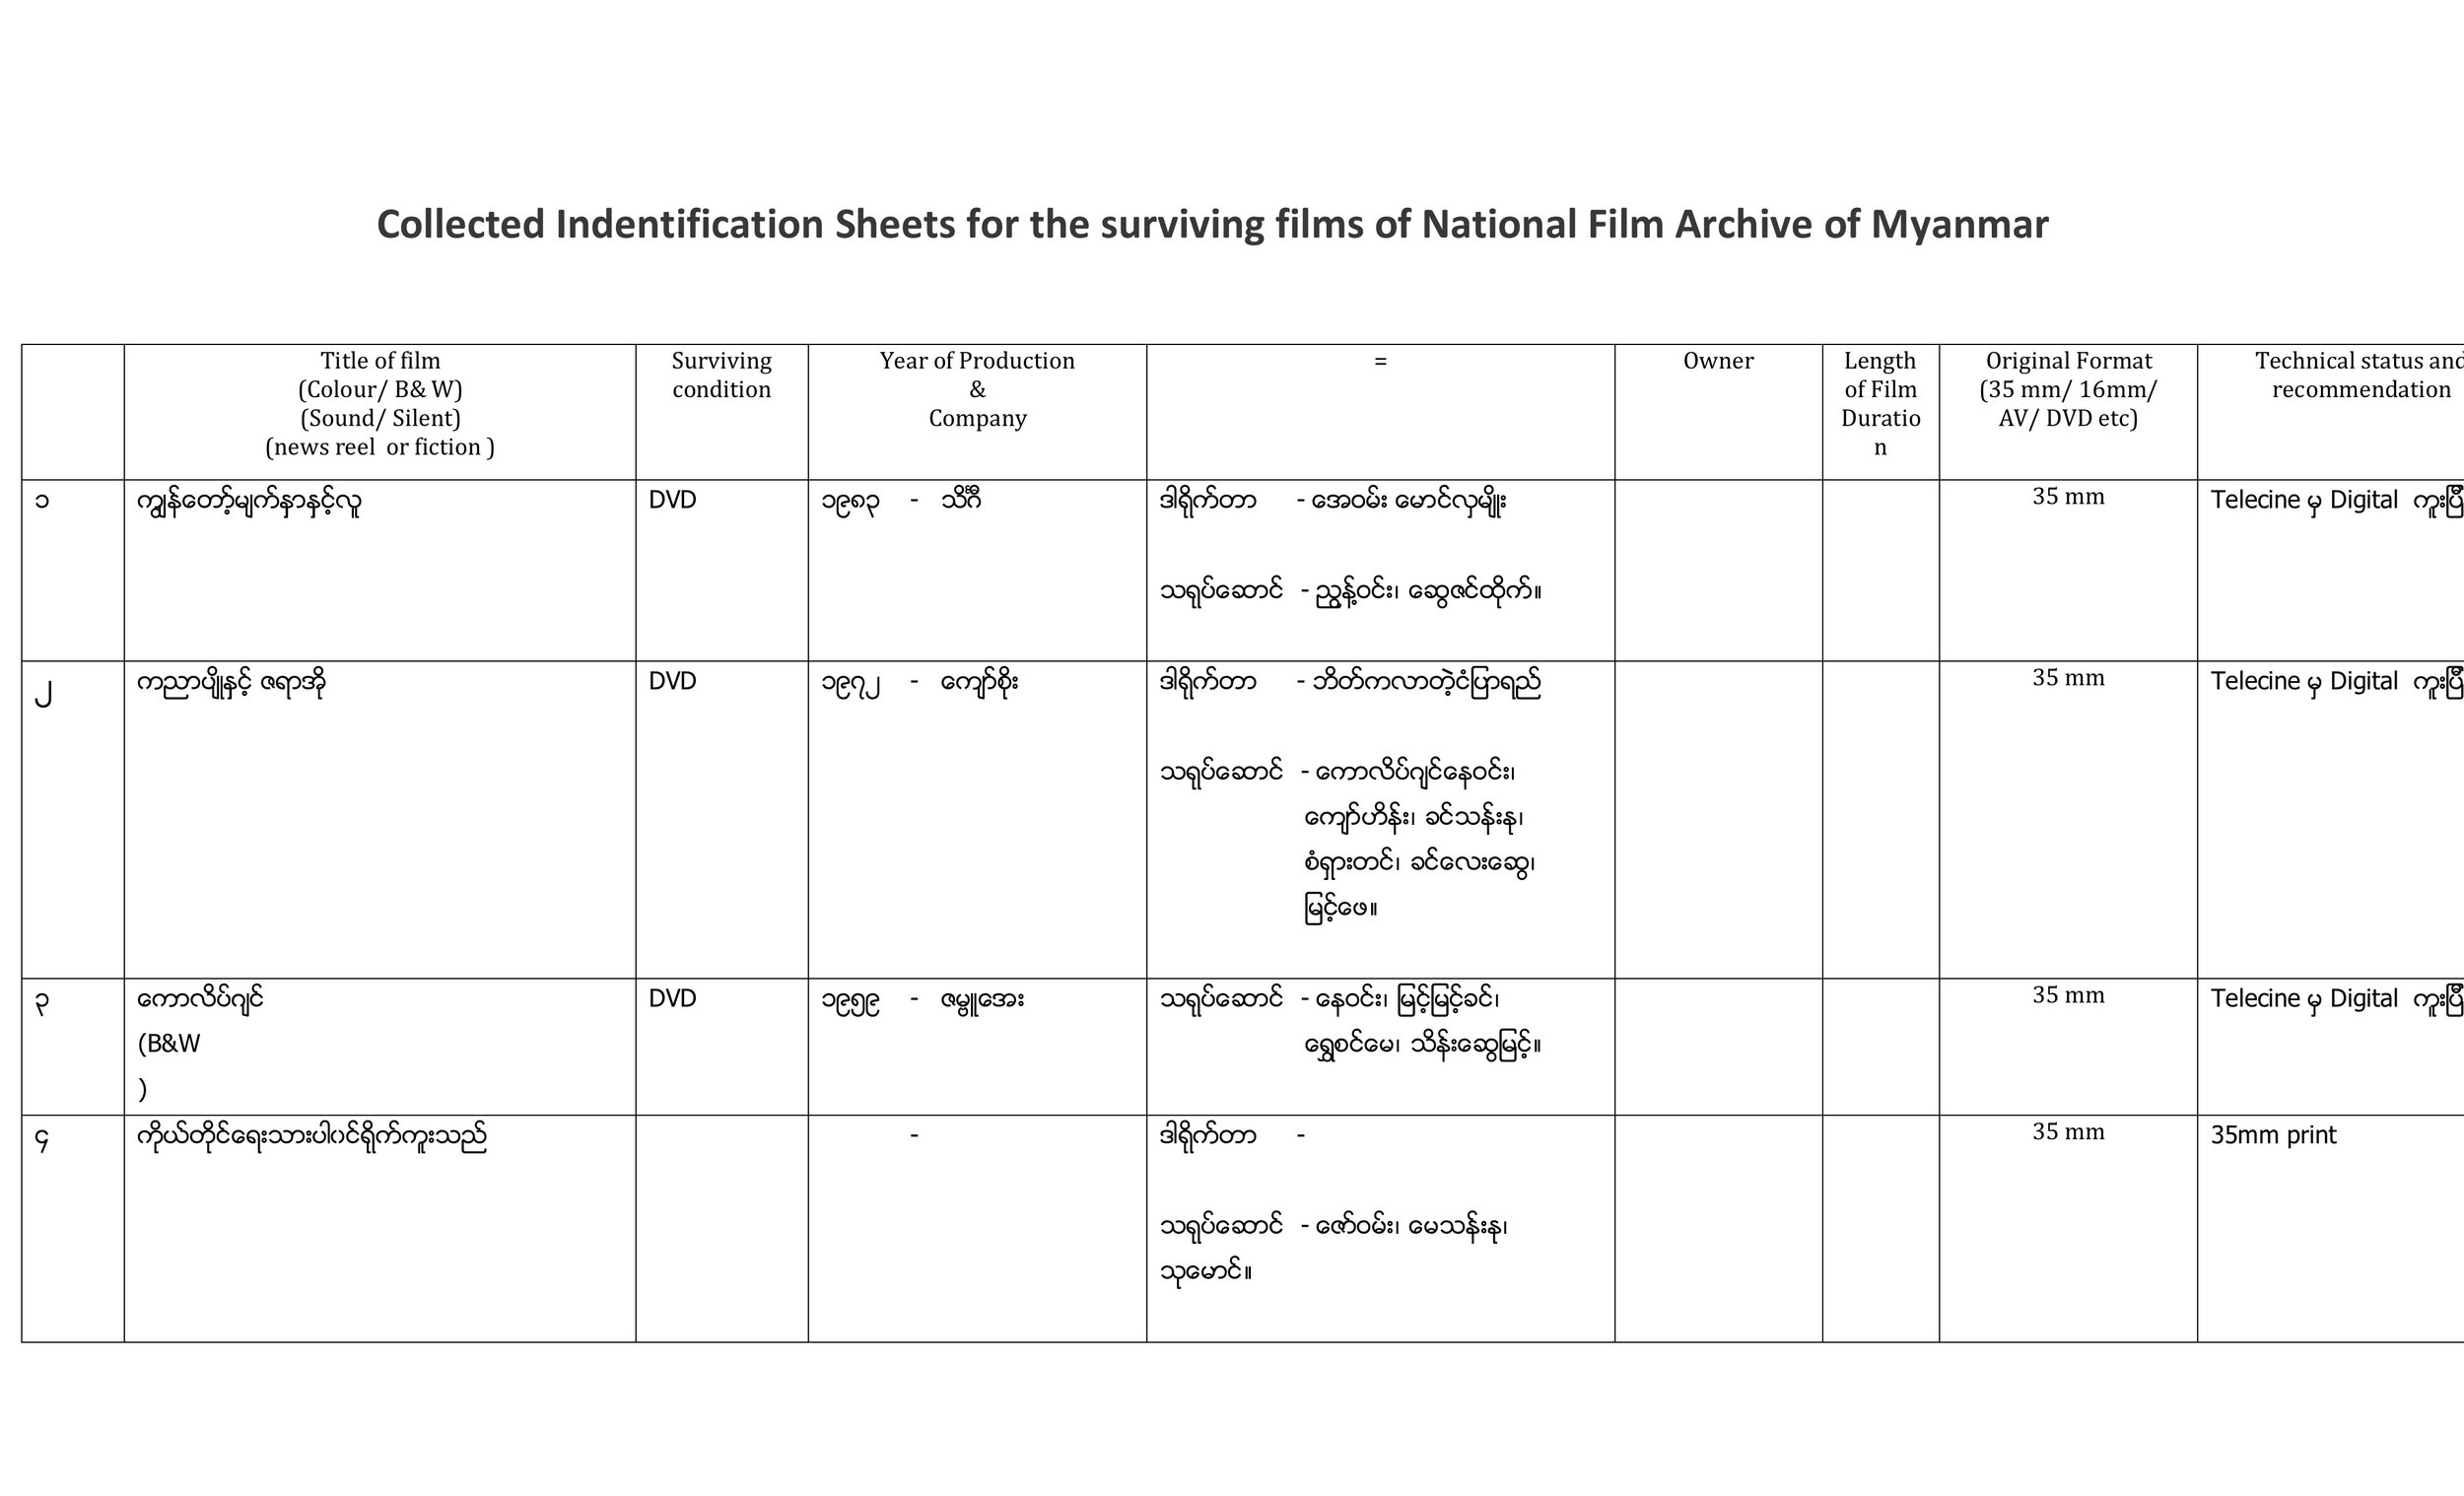 Appendix-E-Collected-Indentification-Sheets-for-the-surviving-films (2).jpg